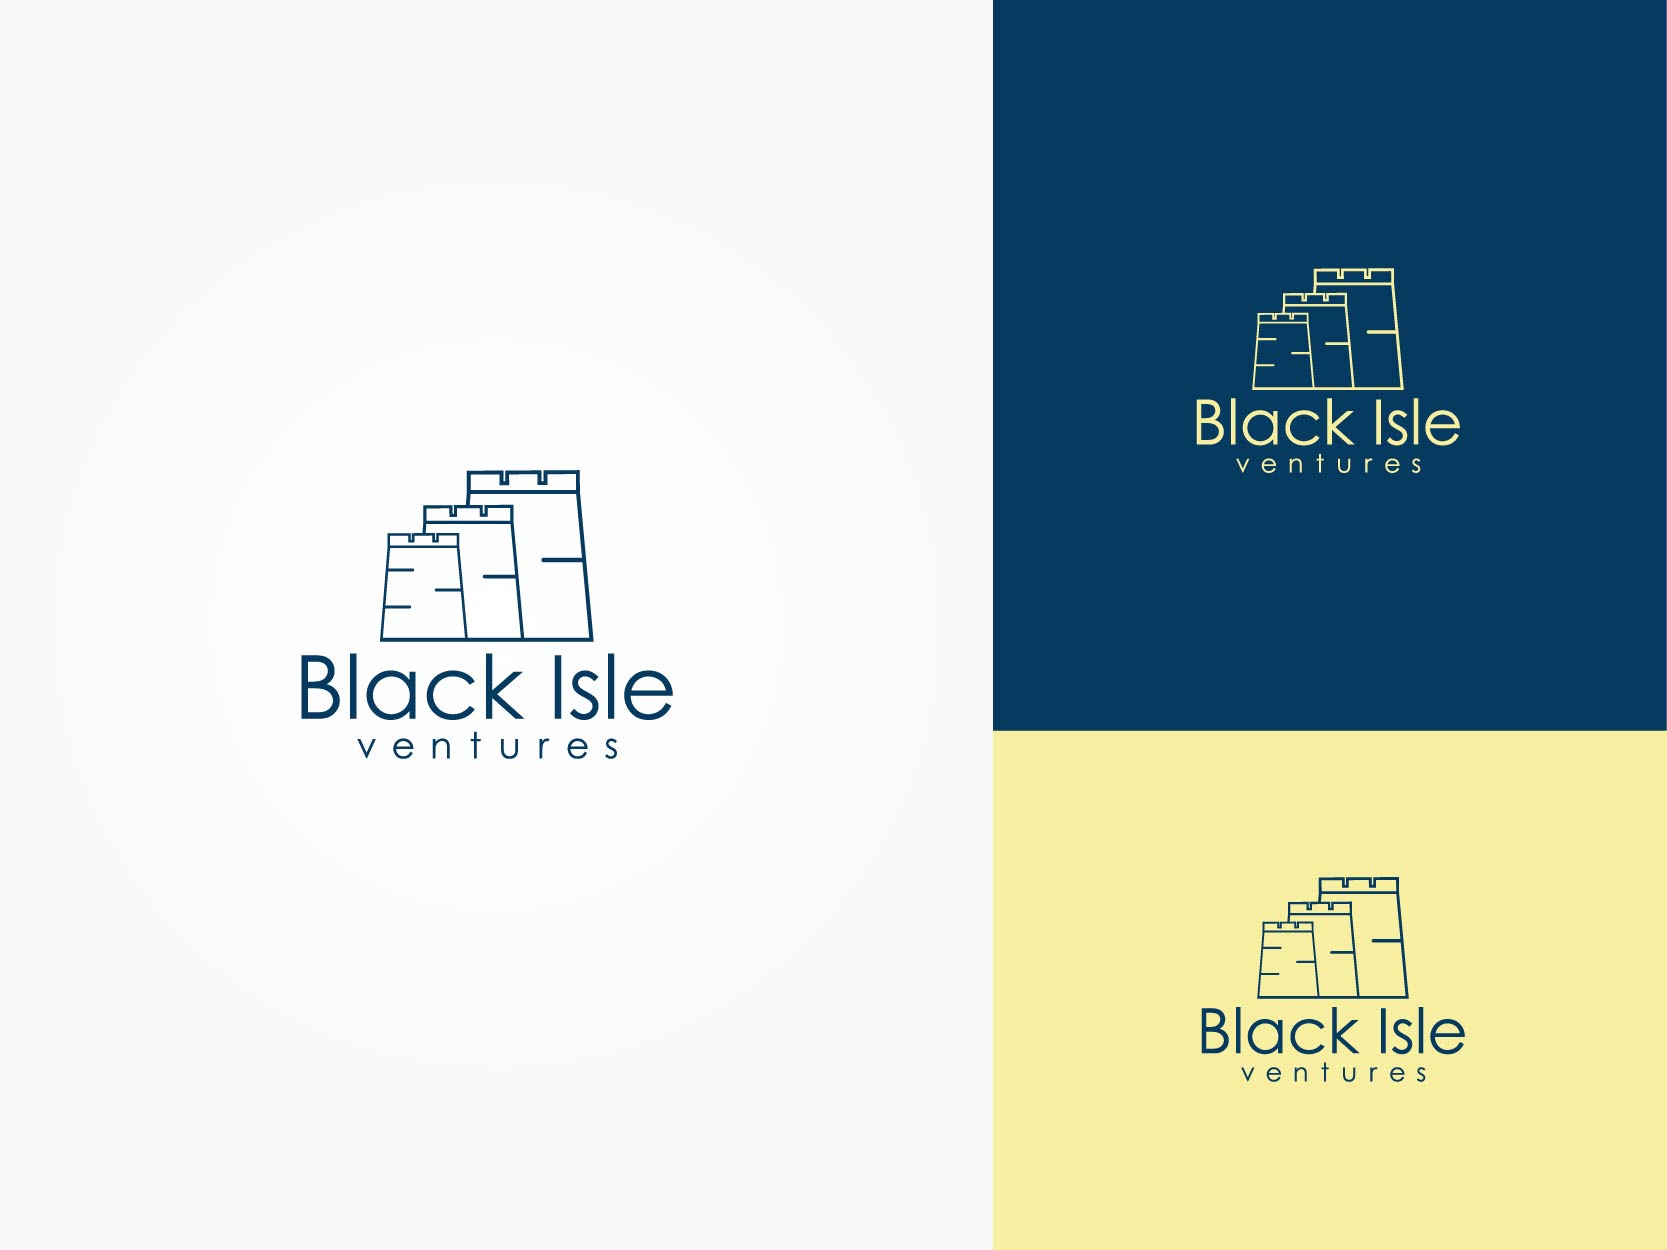 Logo Design by Osi Indra - Entry No. 91 in the Logo Design Contest Creative Logo Design for Black Isle Ventures.